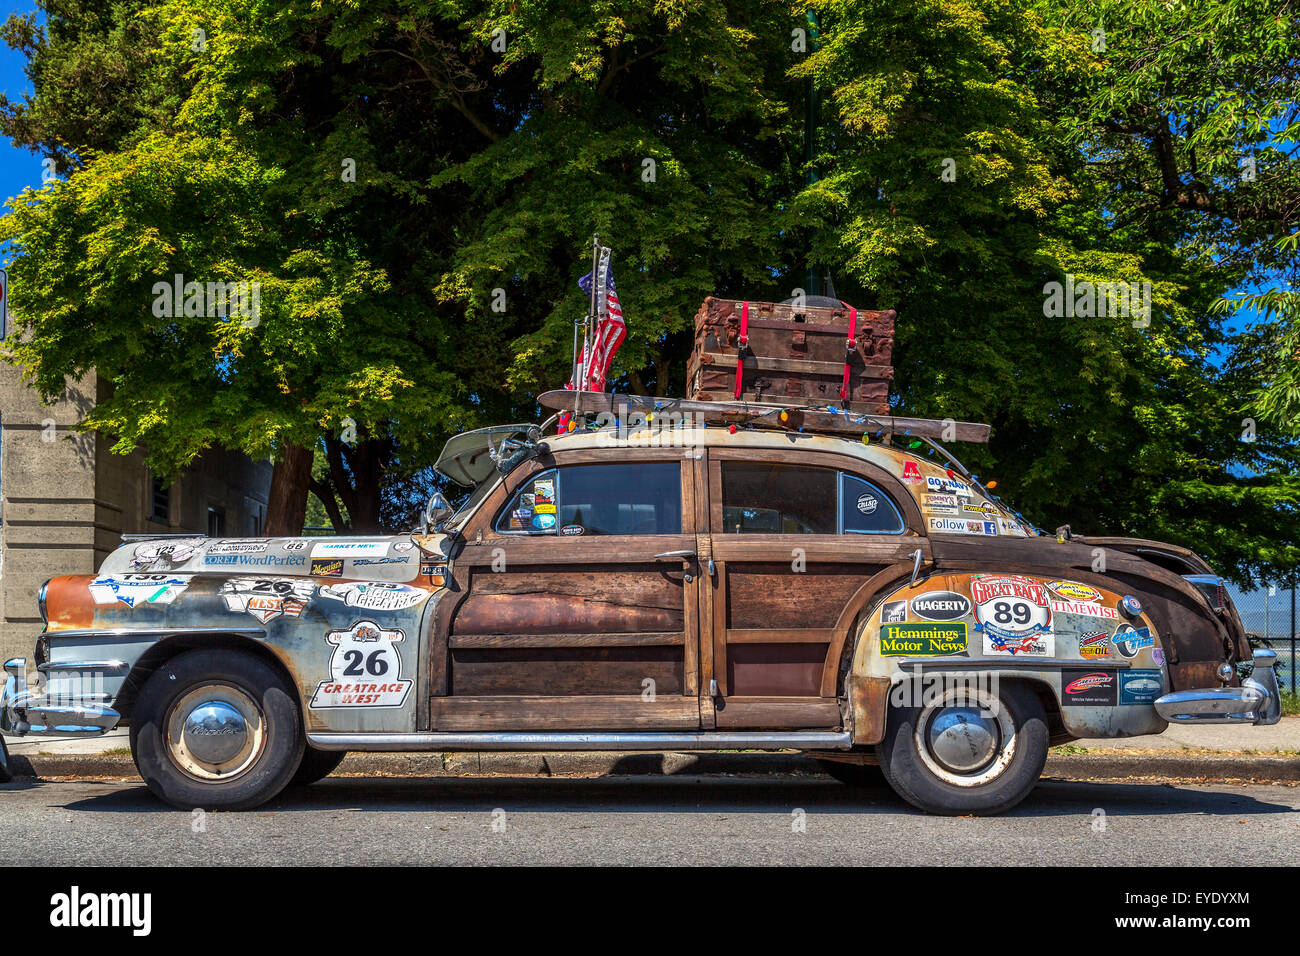 Old Chrysler Town & Country from the fifties, Vancouver, British Columbia, Canada - Stock Image